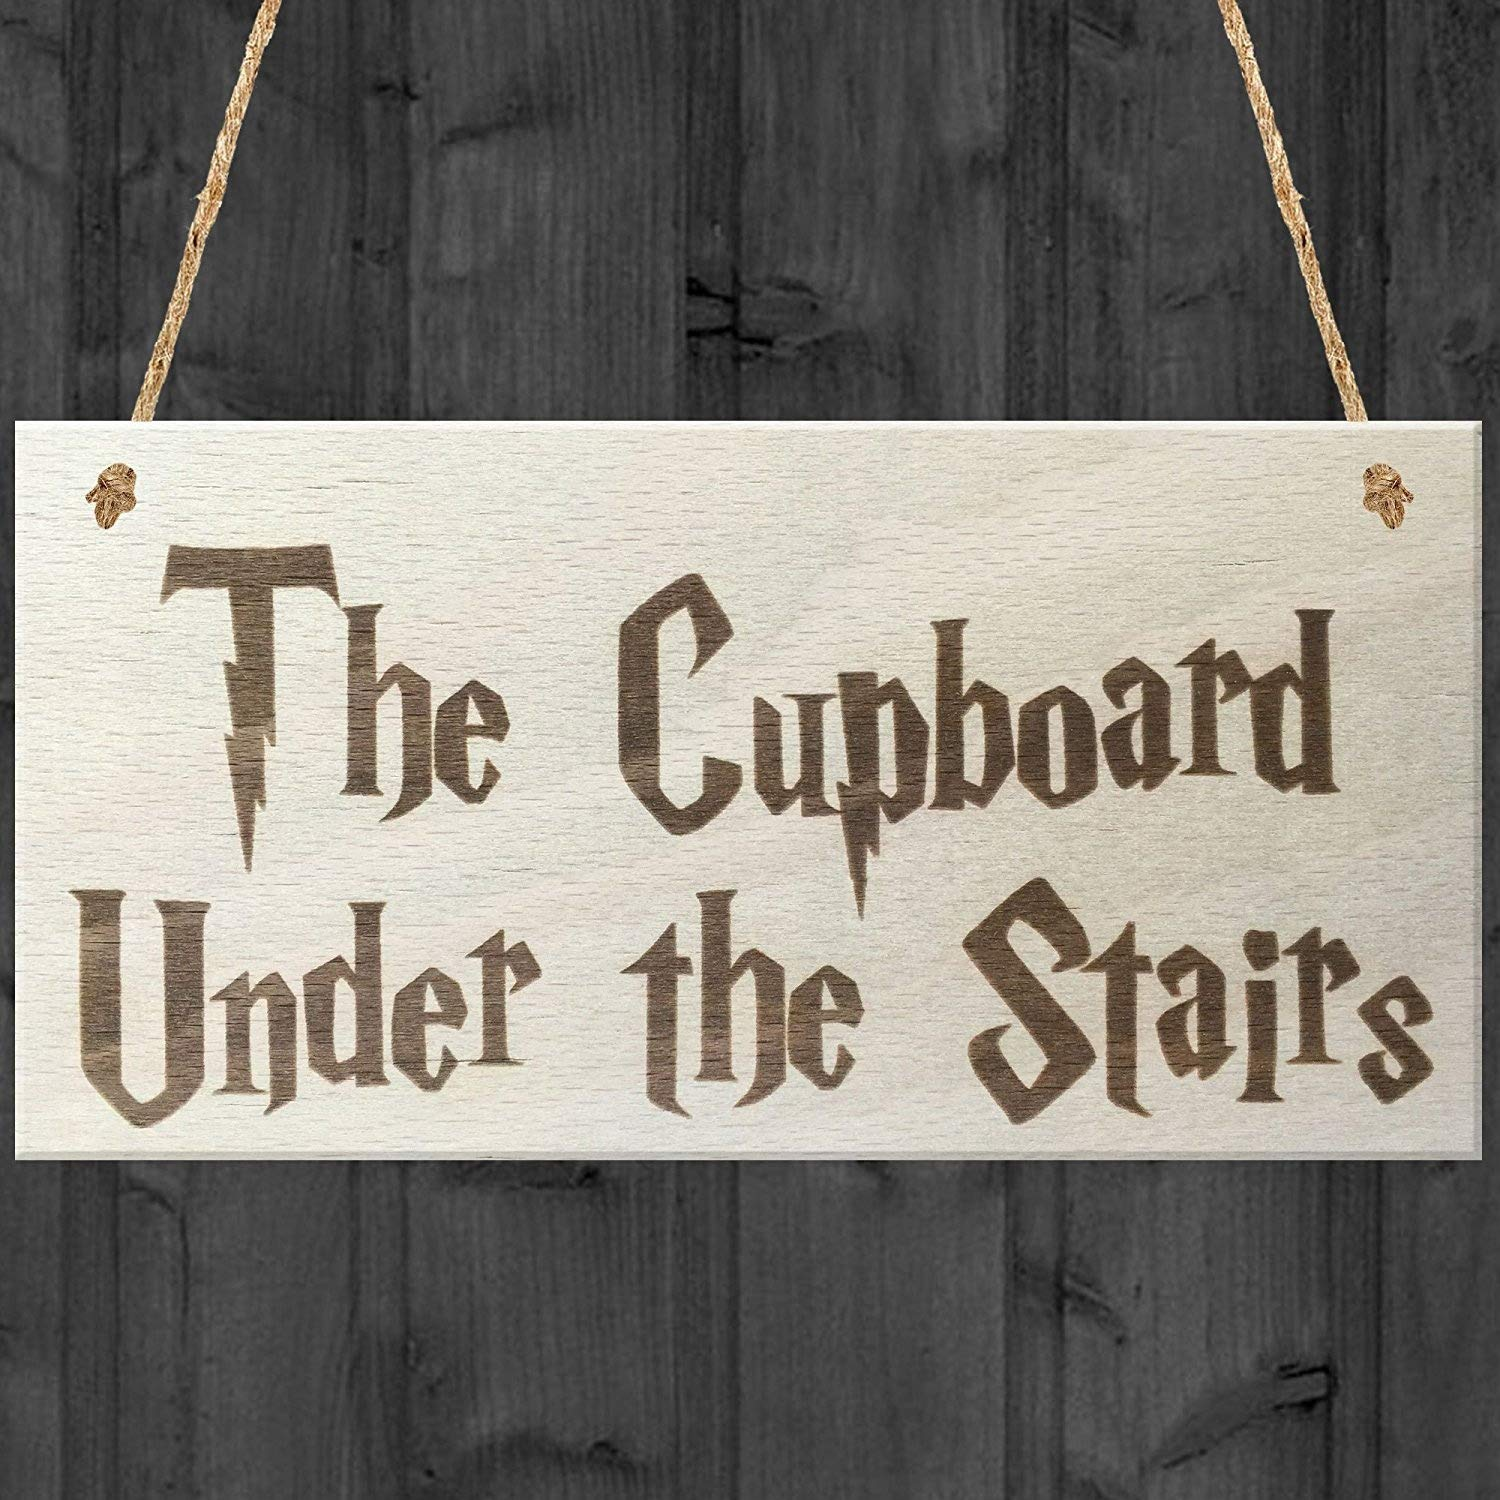 Red Ocean The Cupboard Under The Stairs Novelty Wooden Hanging Plaque Gift Sign